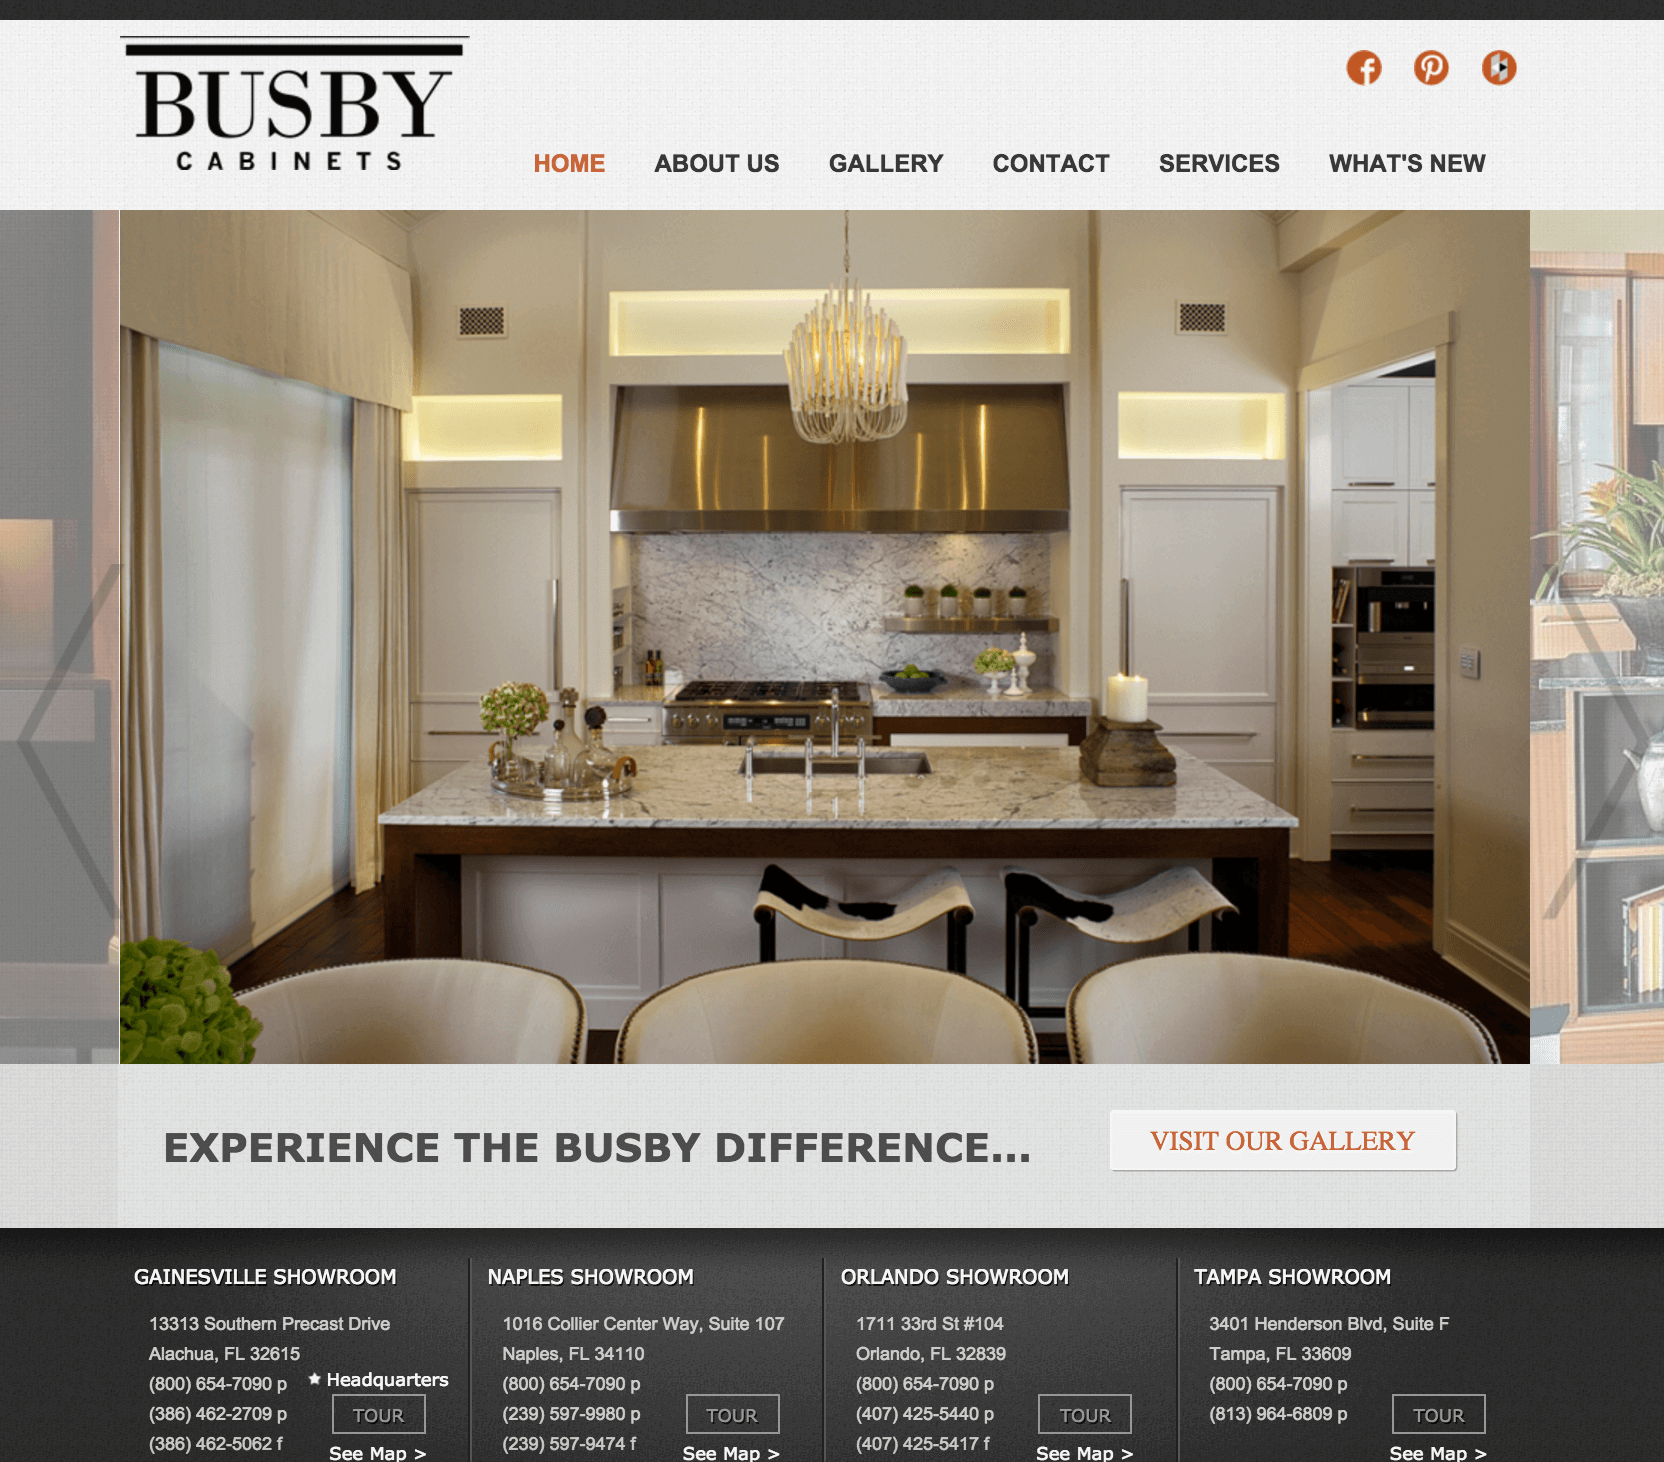 Busby Cabinets Image Preview